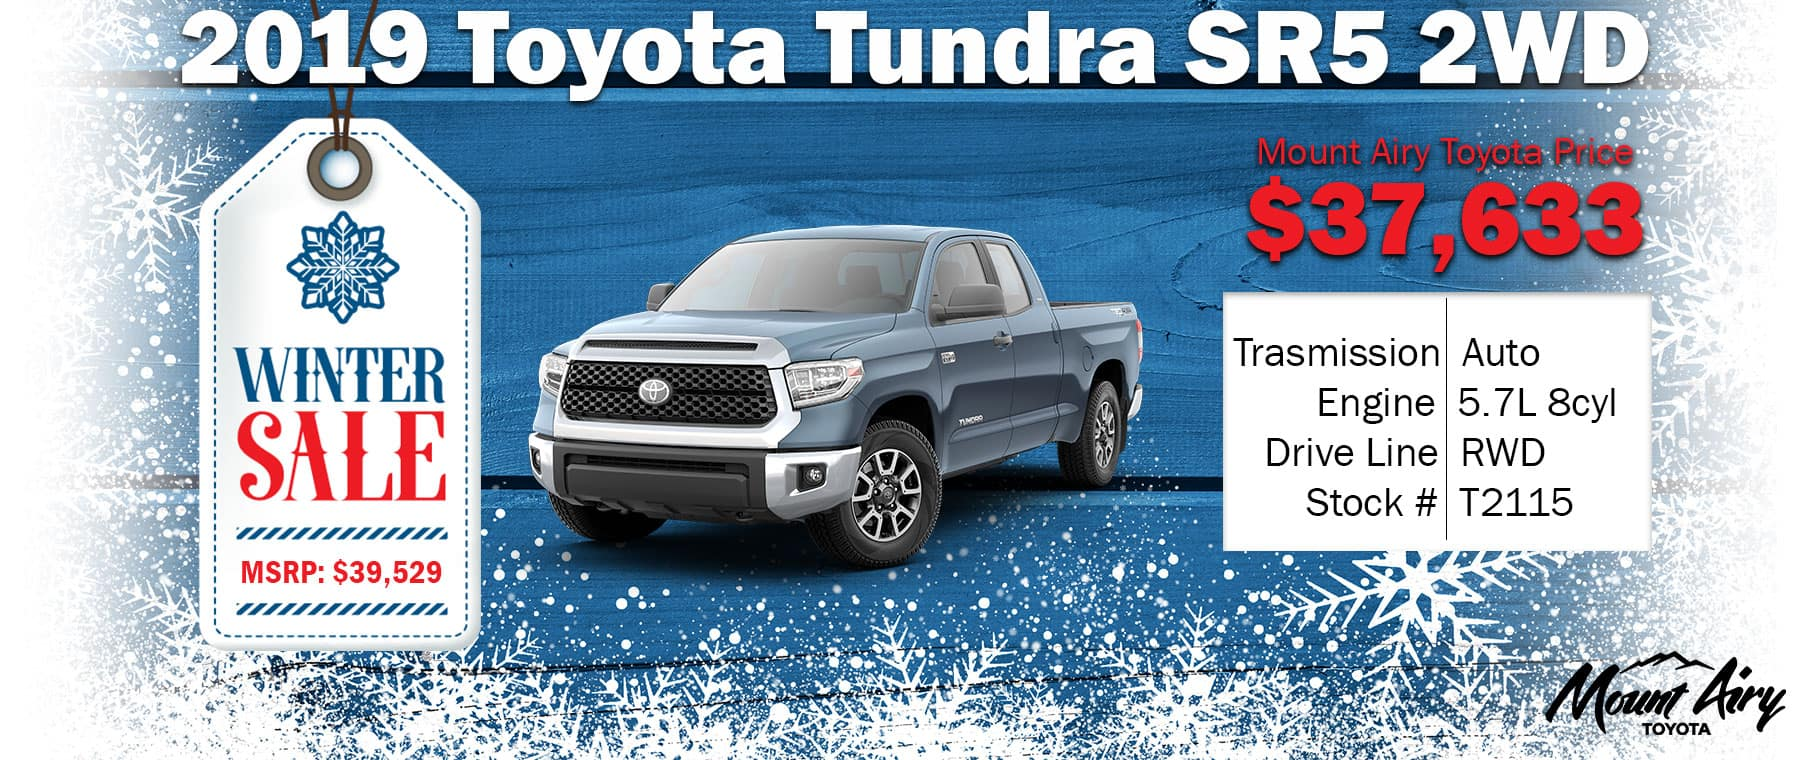 Best Toyota Tundra in Mount Airy